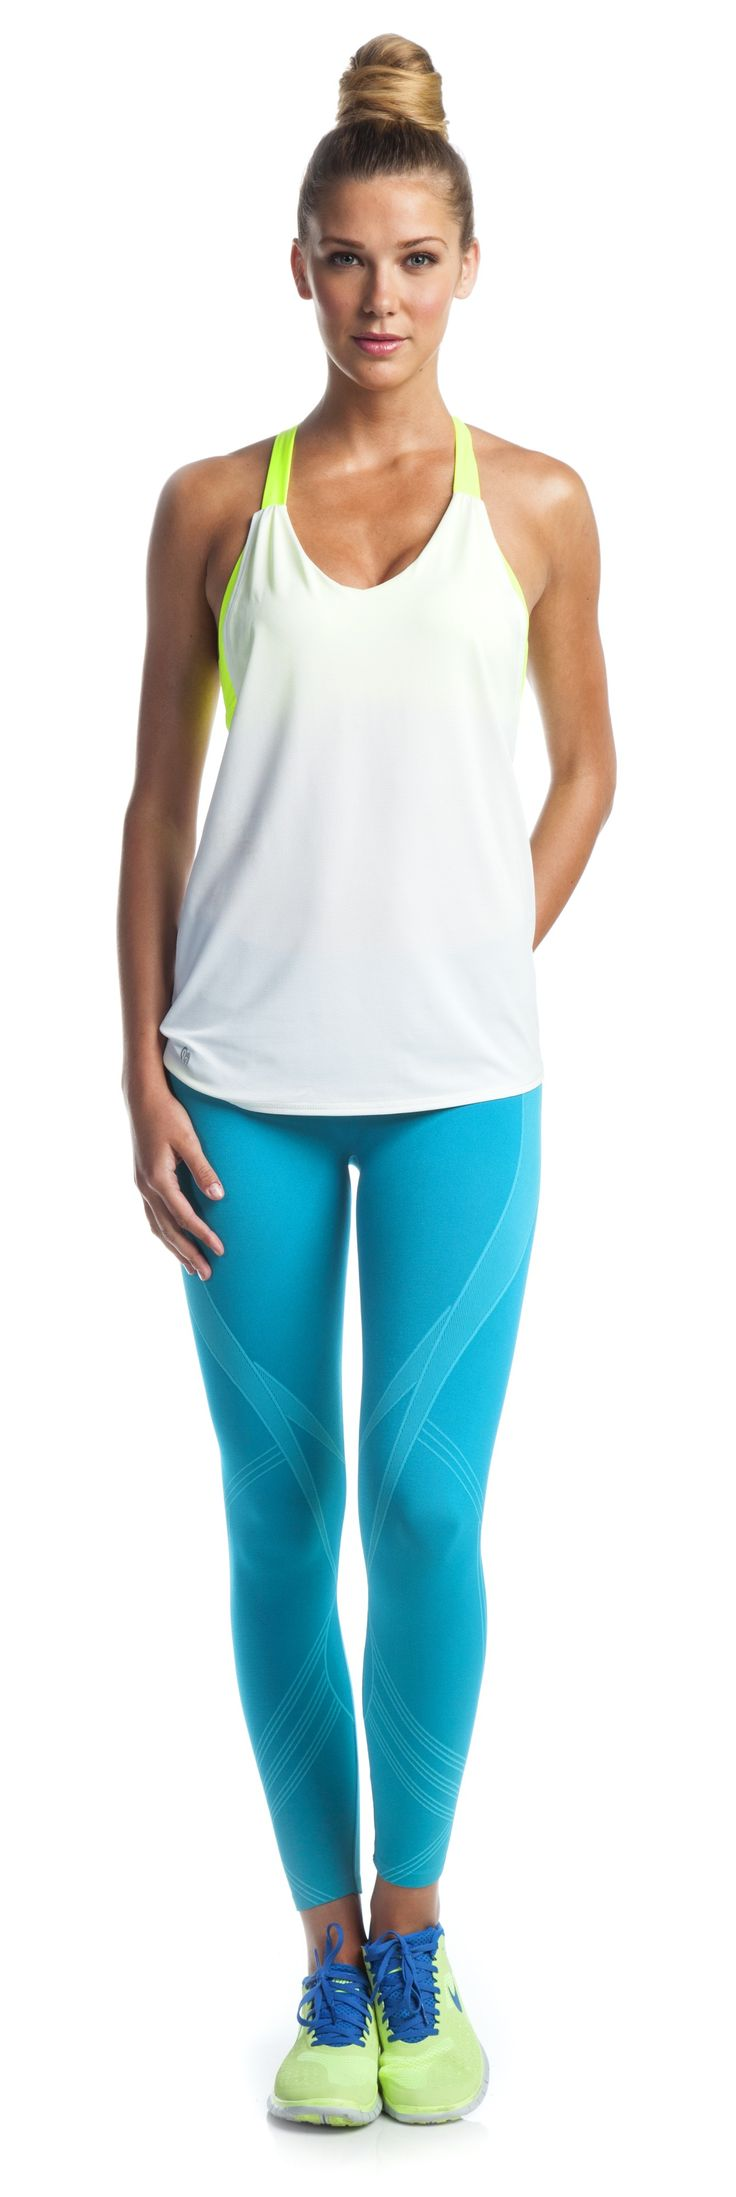 25+ Best Ideas About Blue Workout Clothes On Pinterest